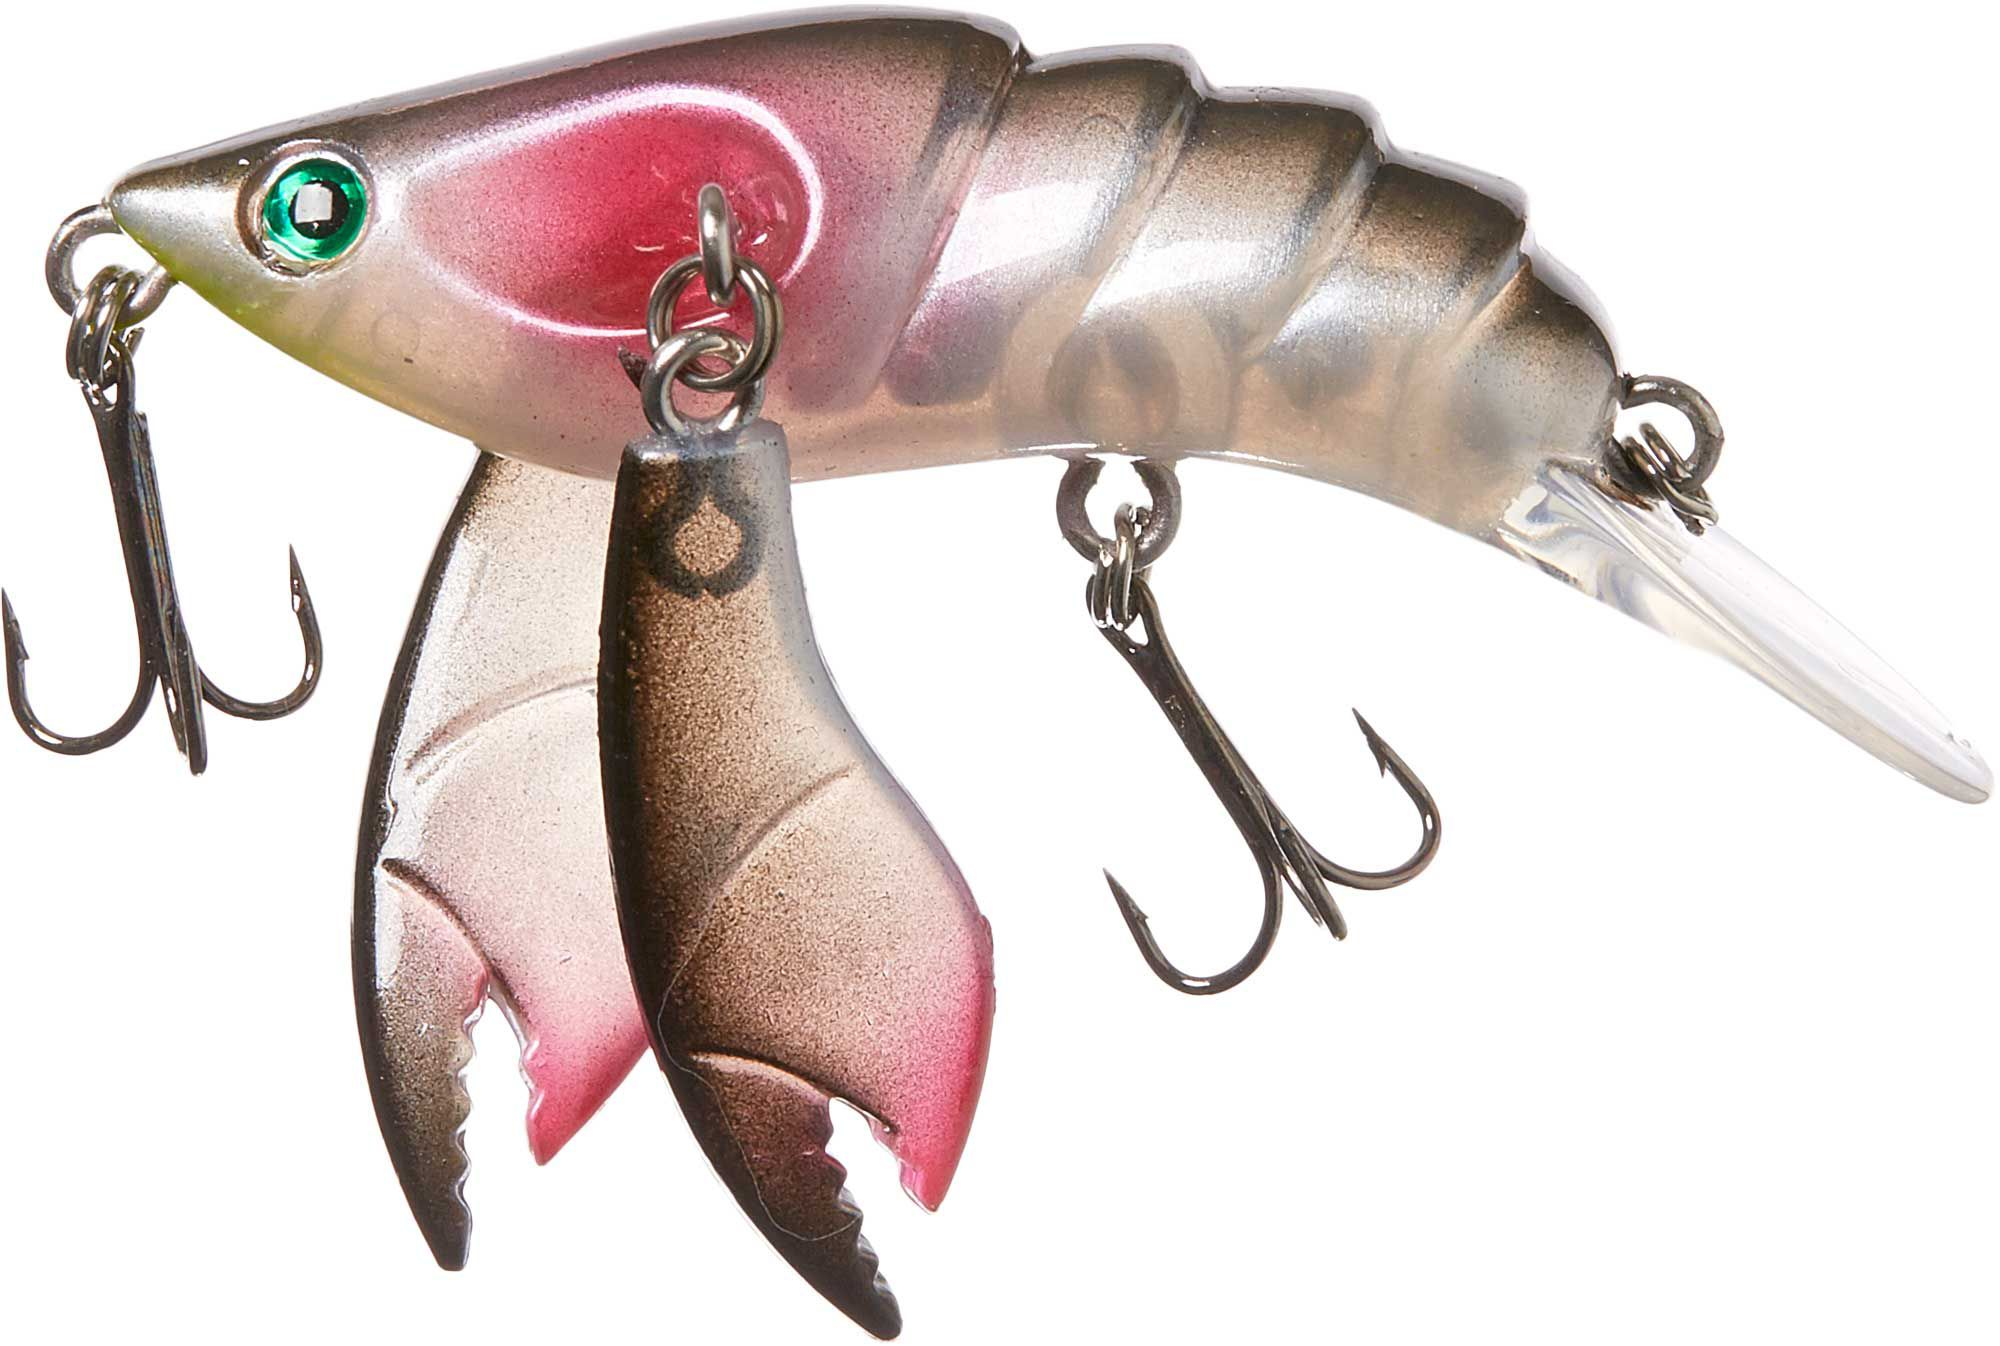 Lure from 3 months: start or wait